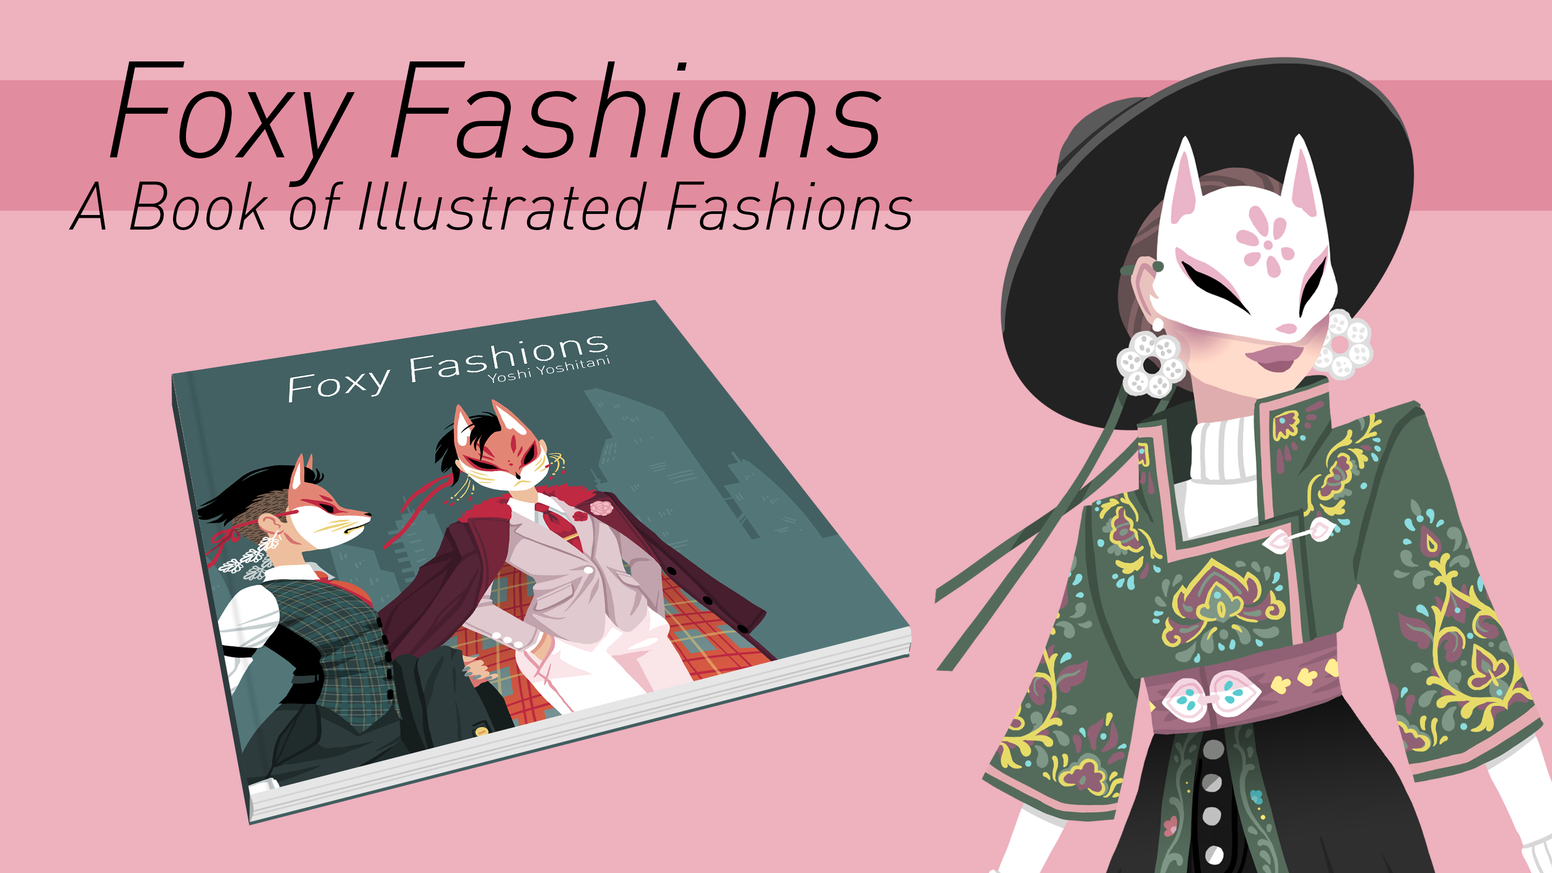 A Book of Illustrated Fashions